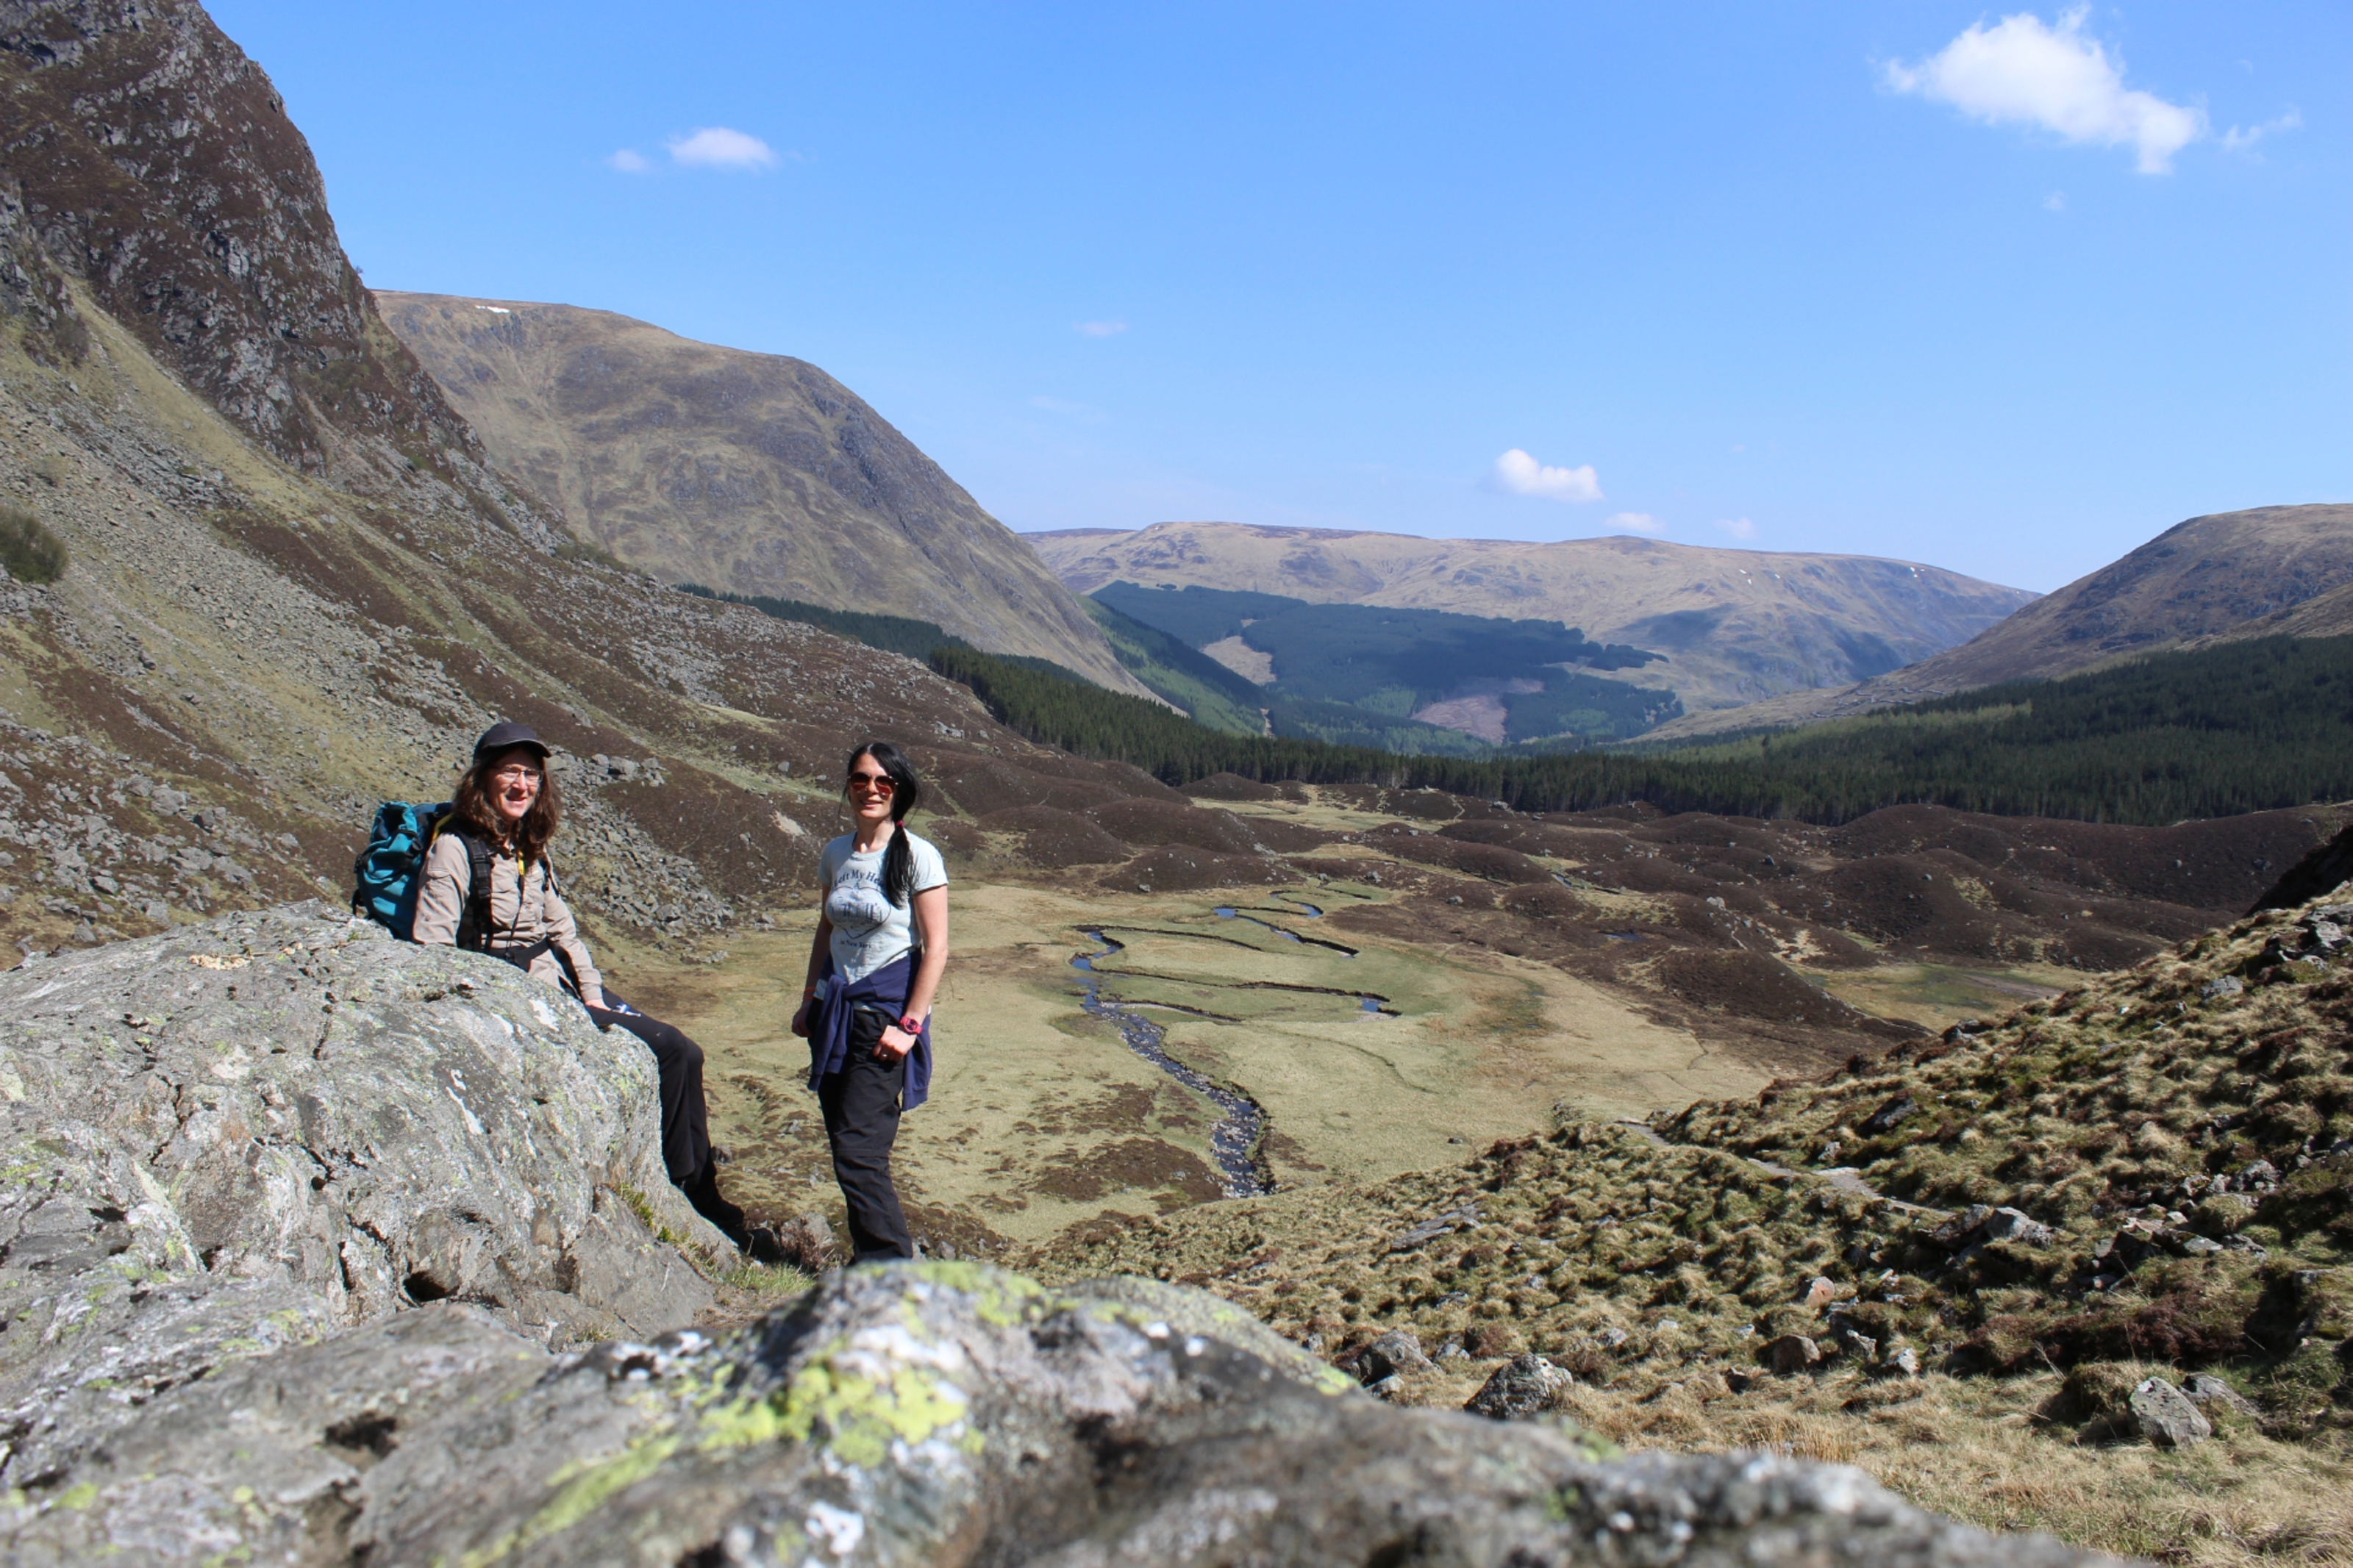 Lisa King and Gayle Ritchie in Corrie Fee, in the heart of the Angus Glens.